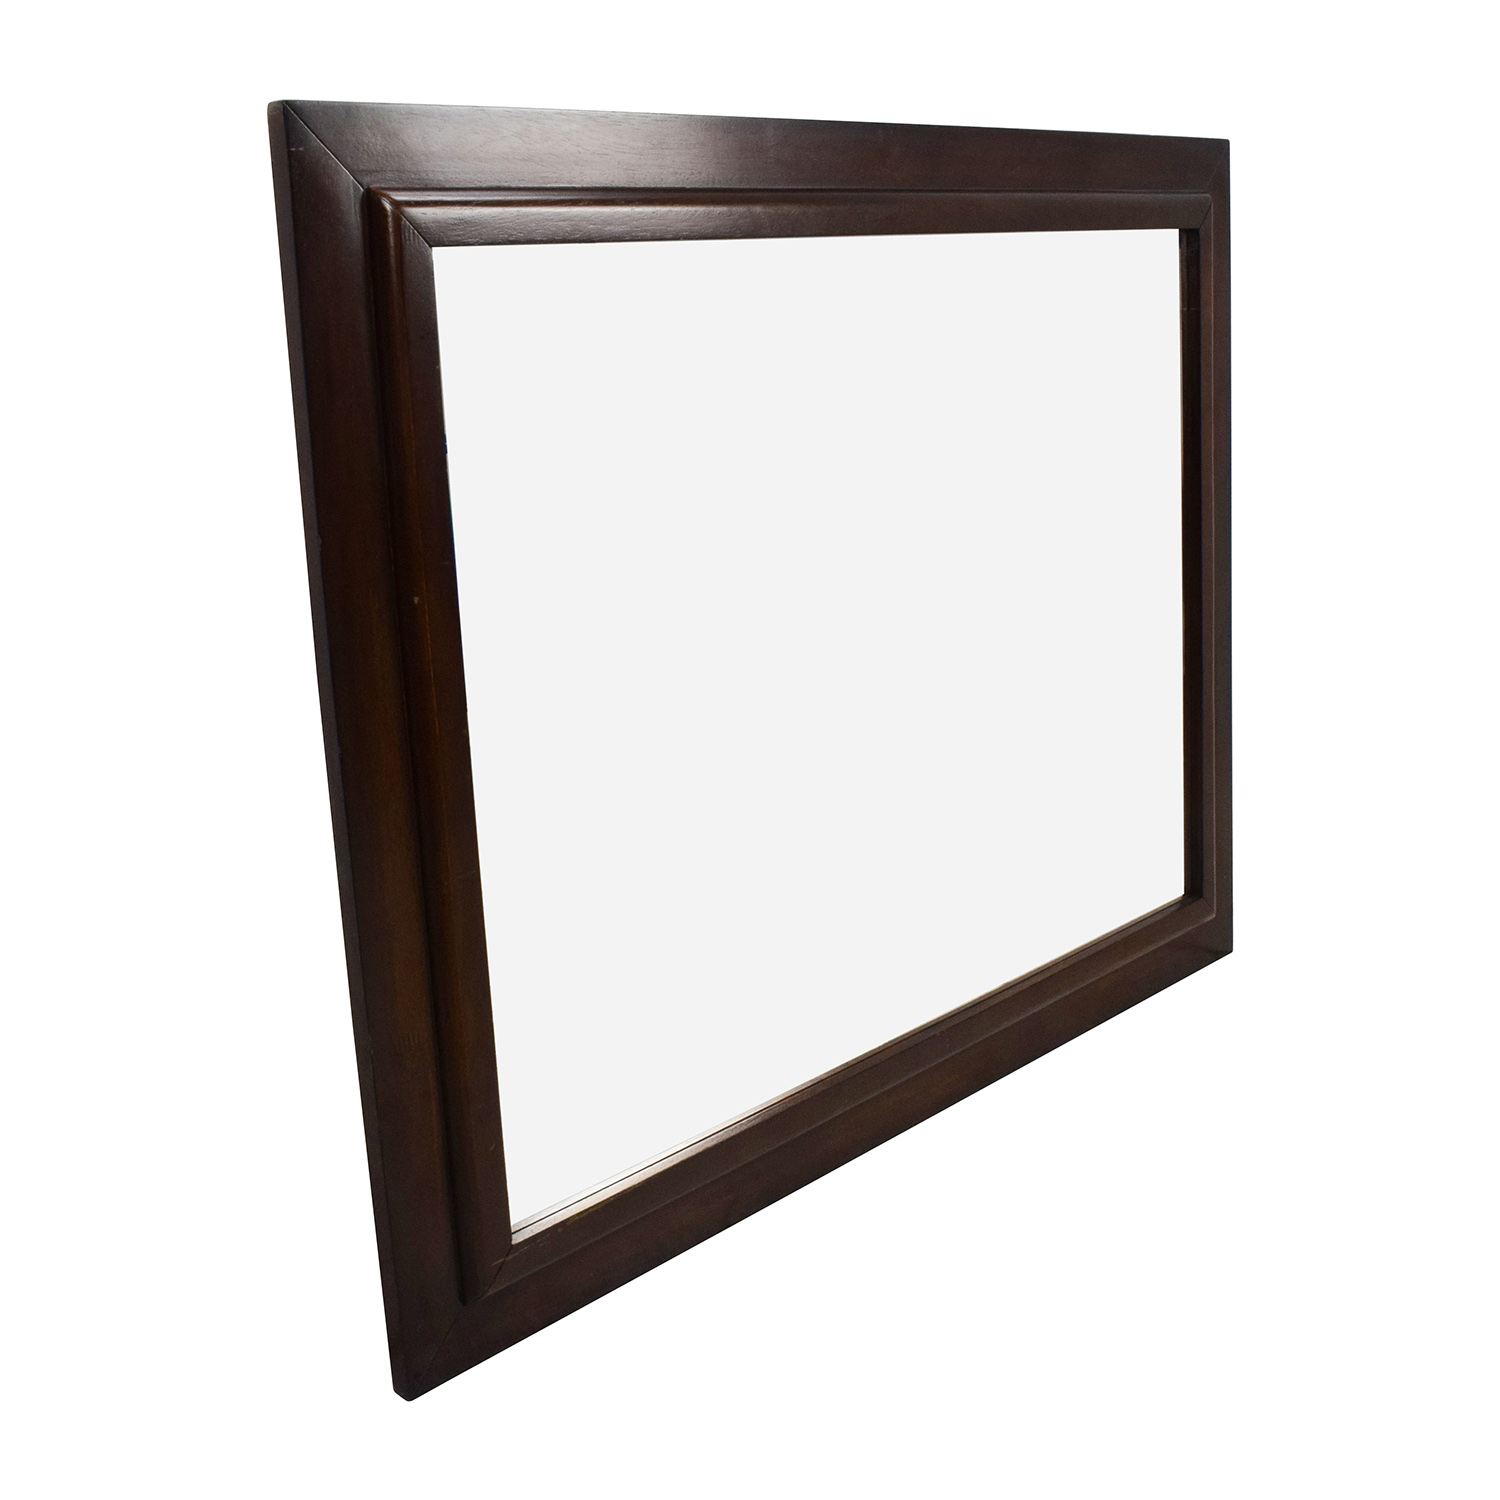 Amazing large framed wall mirrors ideas picture frame for Large framed mirrors for walls